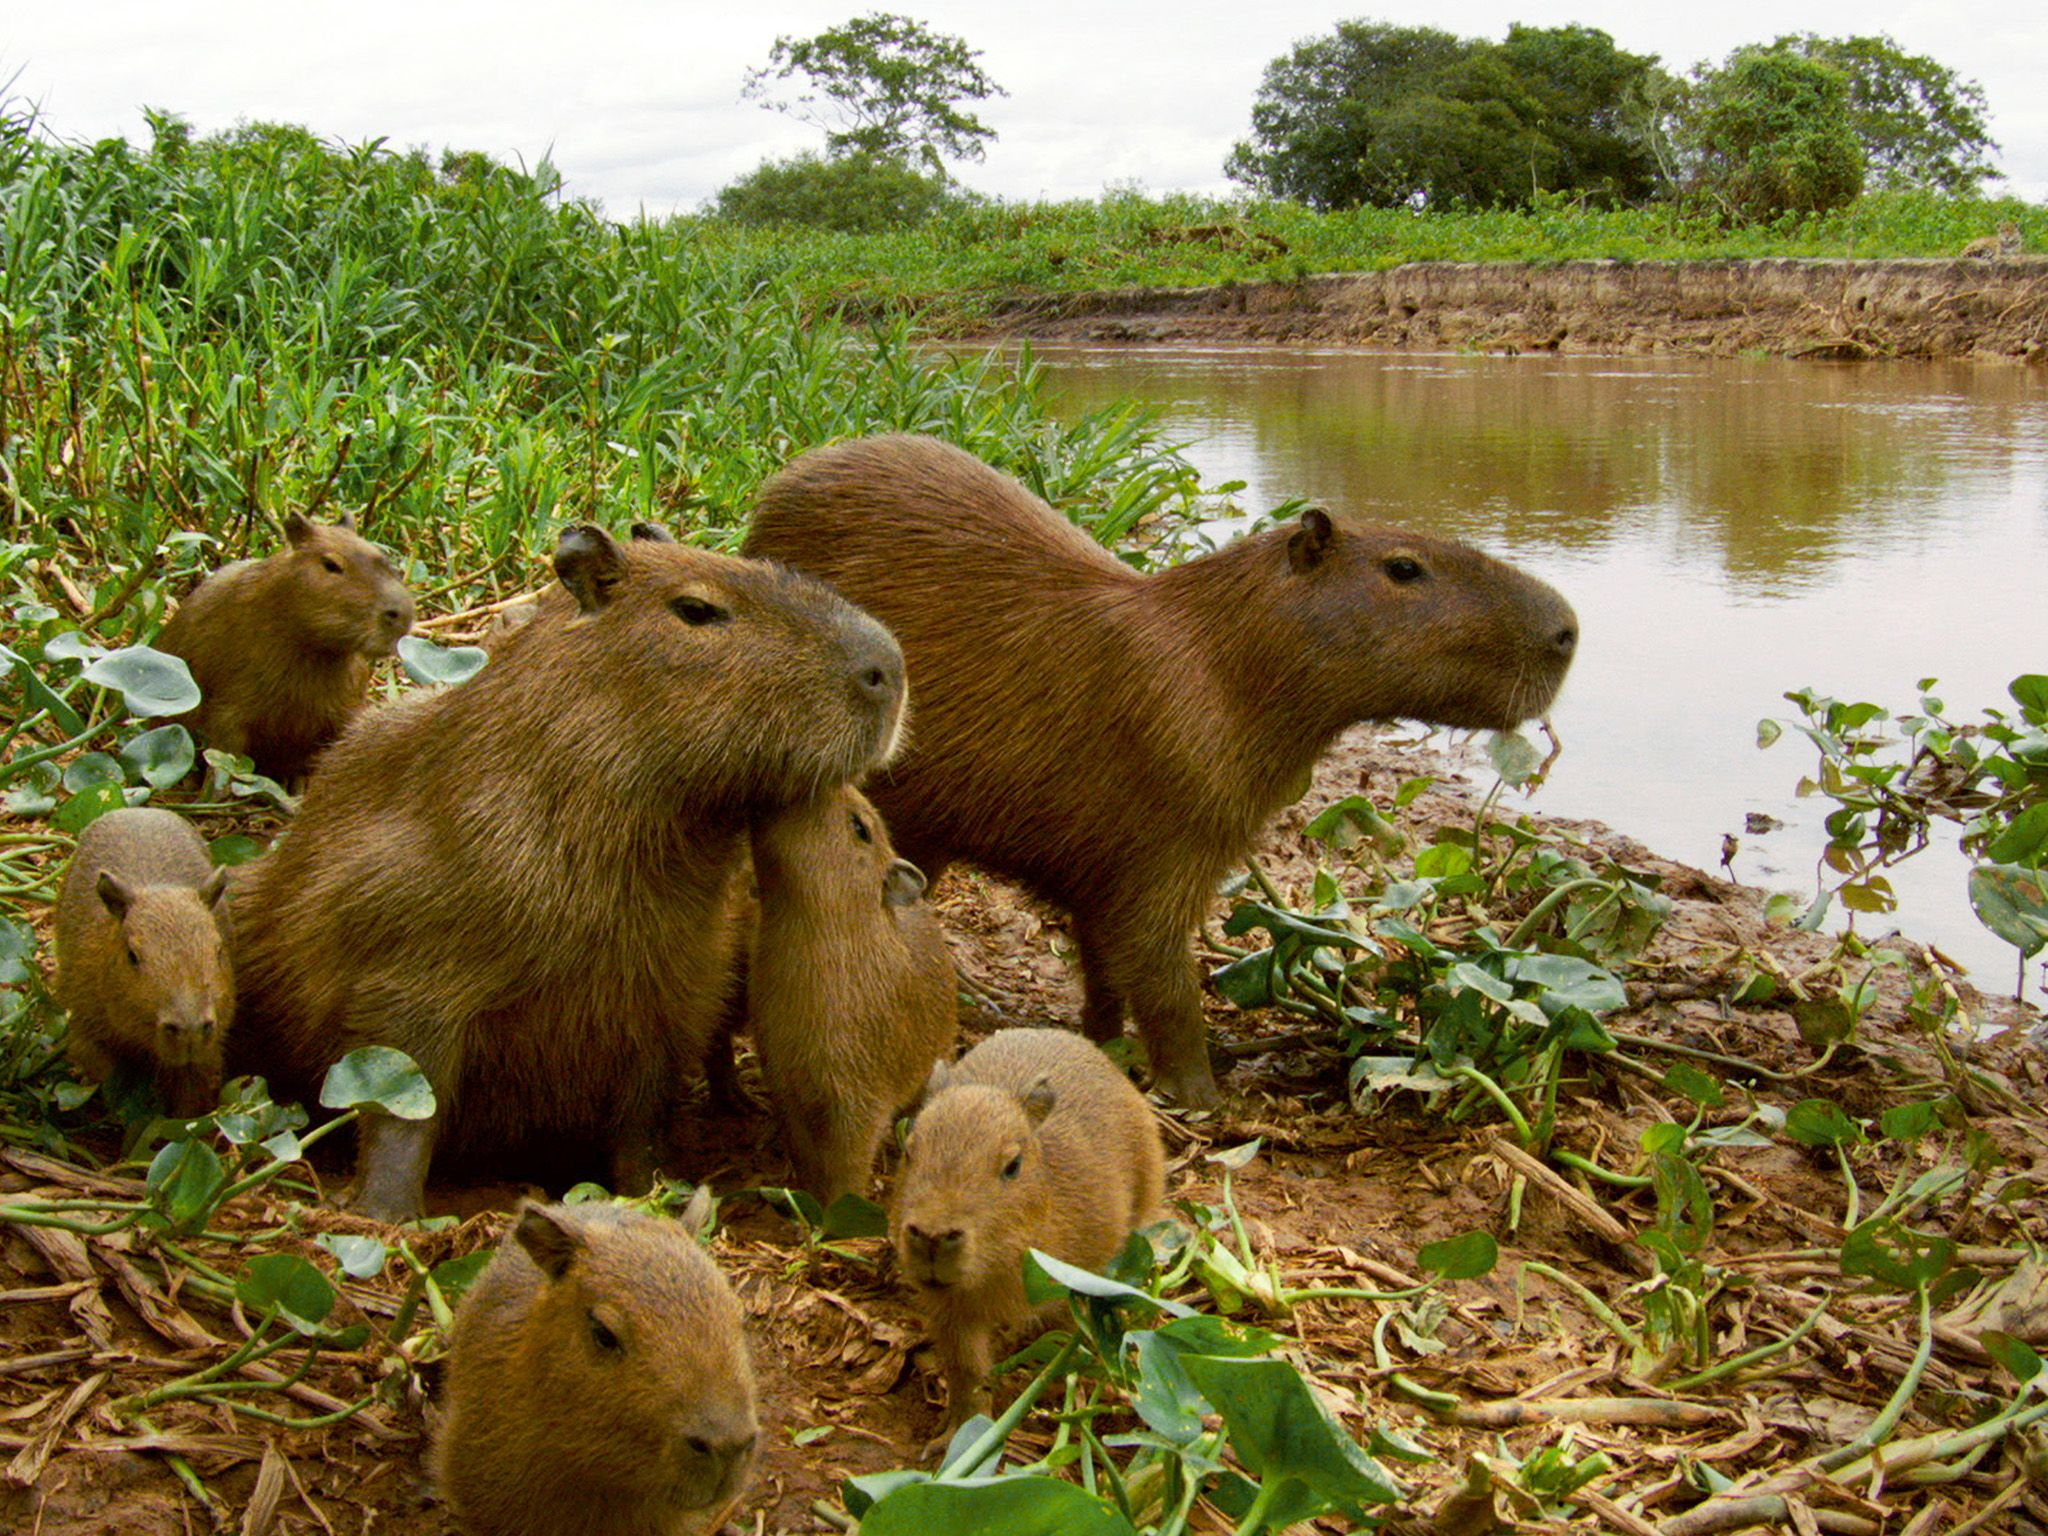 Pantanal, Brazil: Capybara (Hydrochoerus hydrochaeris) two adults with five young. This image is... [Photo of the day - فوریه 2015]